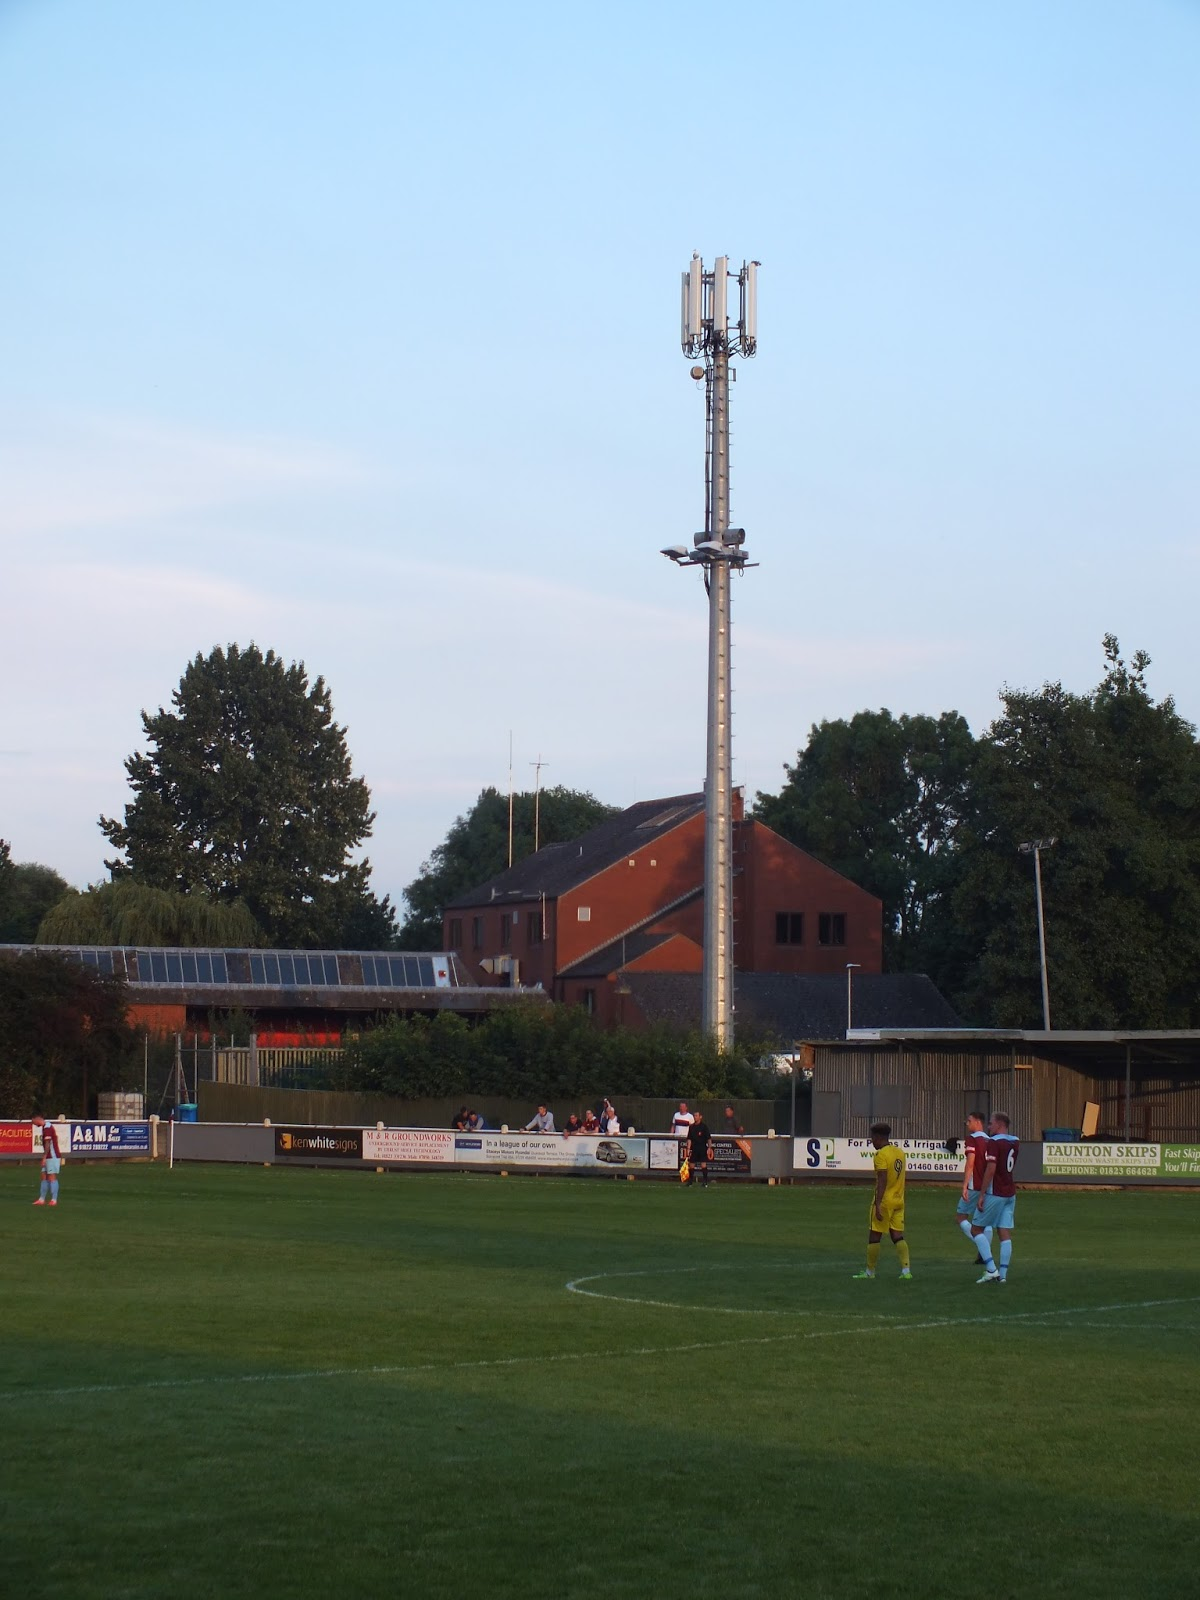 PARTIZAN BRISTLE 53 Wordsworth Drive Taunton Town